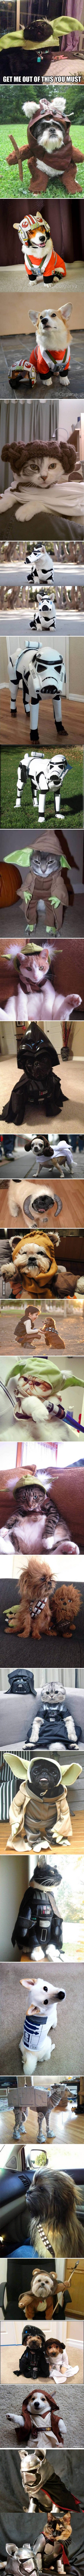 29 Pictures Of Cats And Dogs Who Have The Best Star Wars Costumes